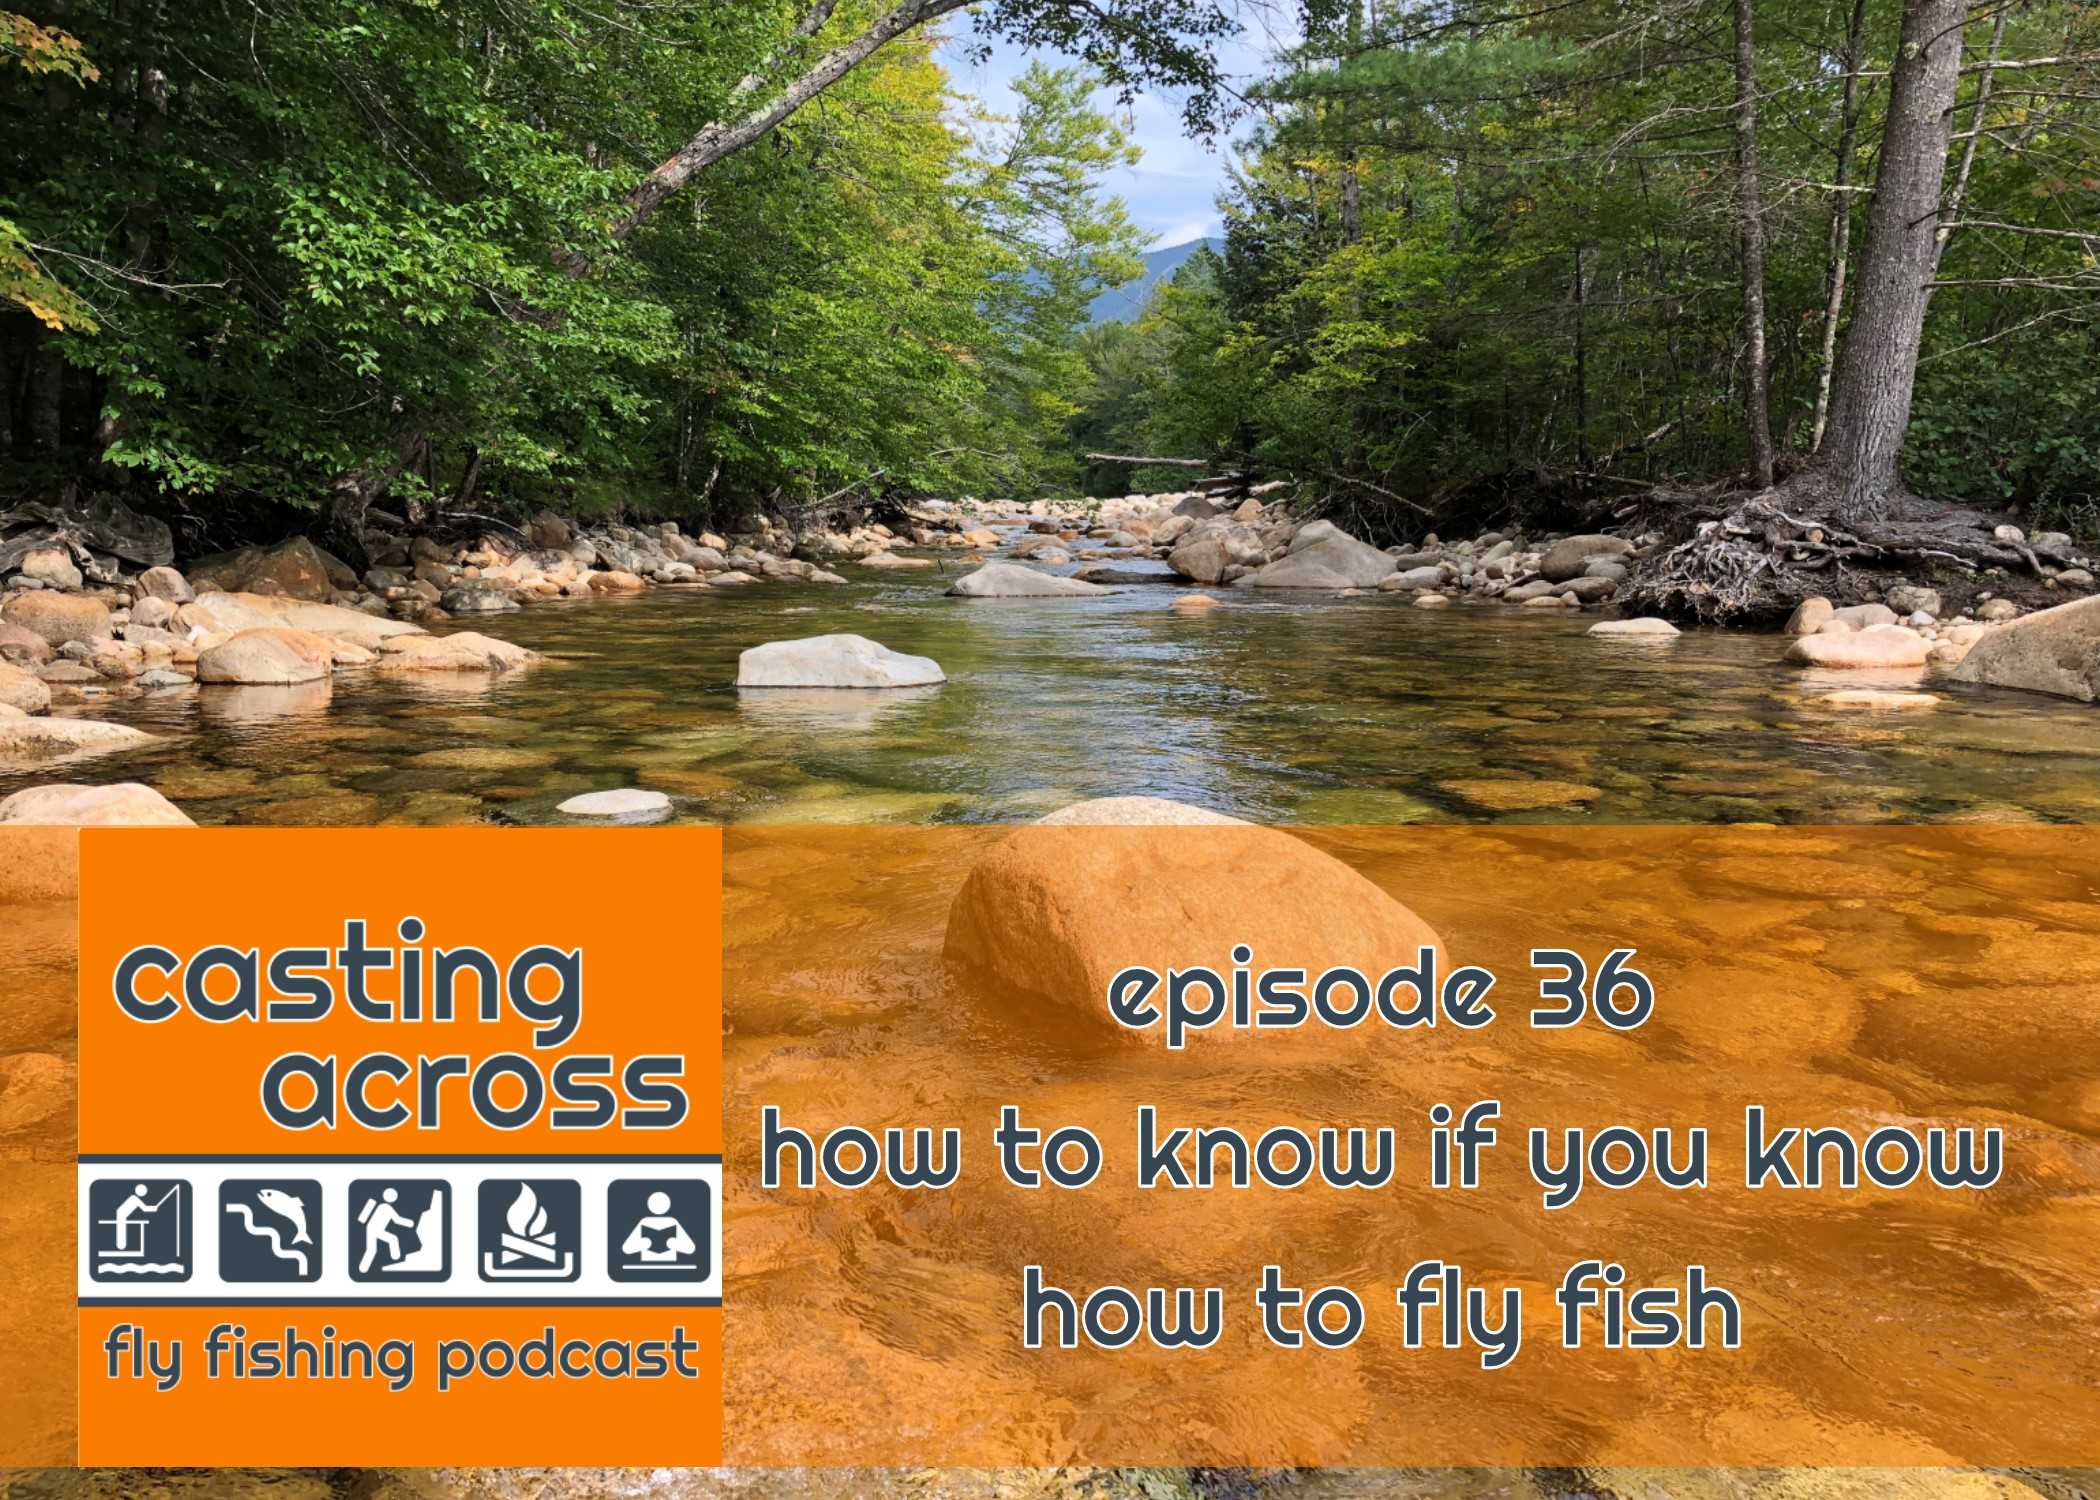 Podcast Ep. 36: How to Know if You Know How to Fly Fish - Casting Across